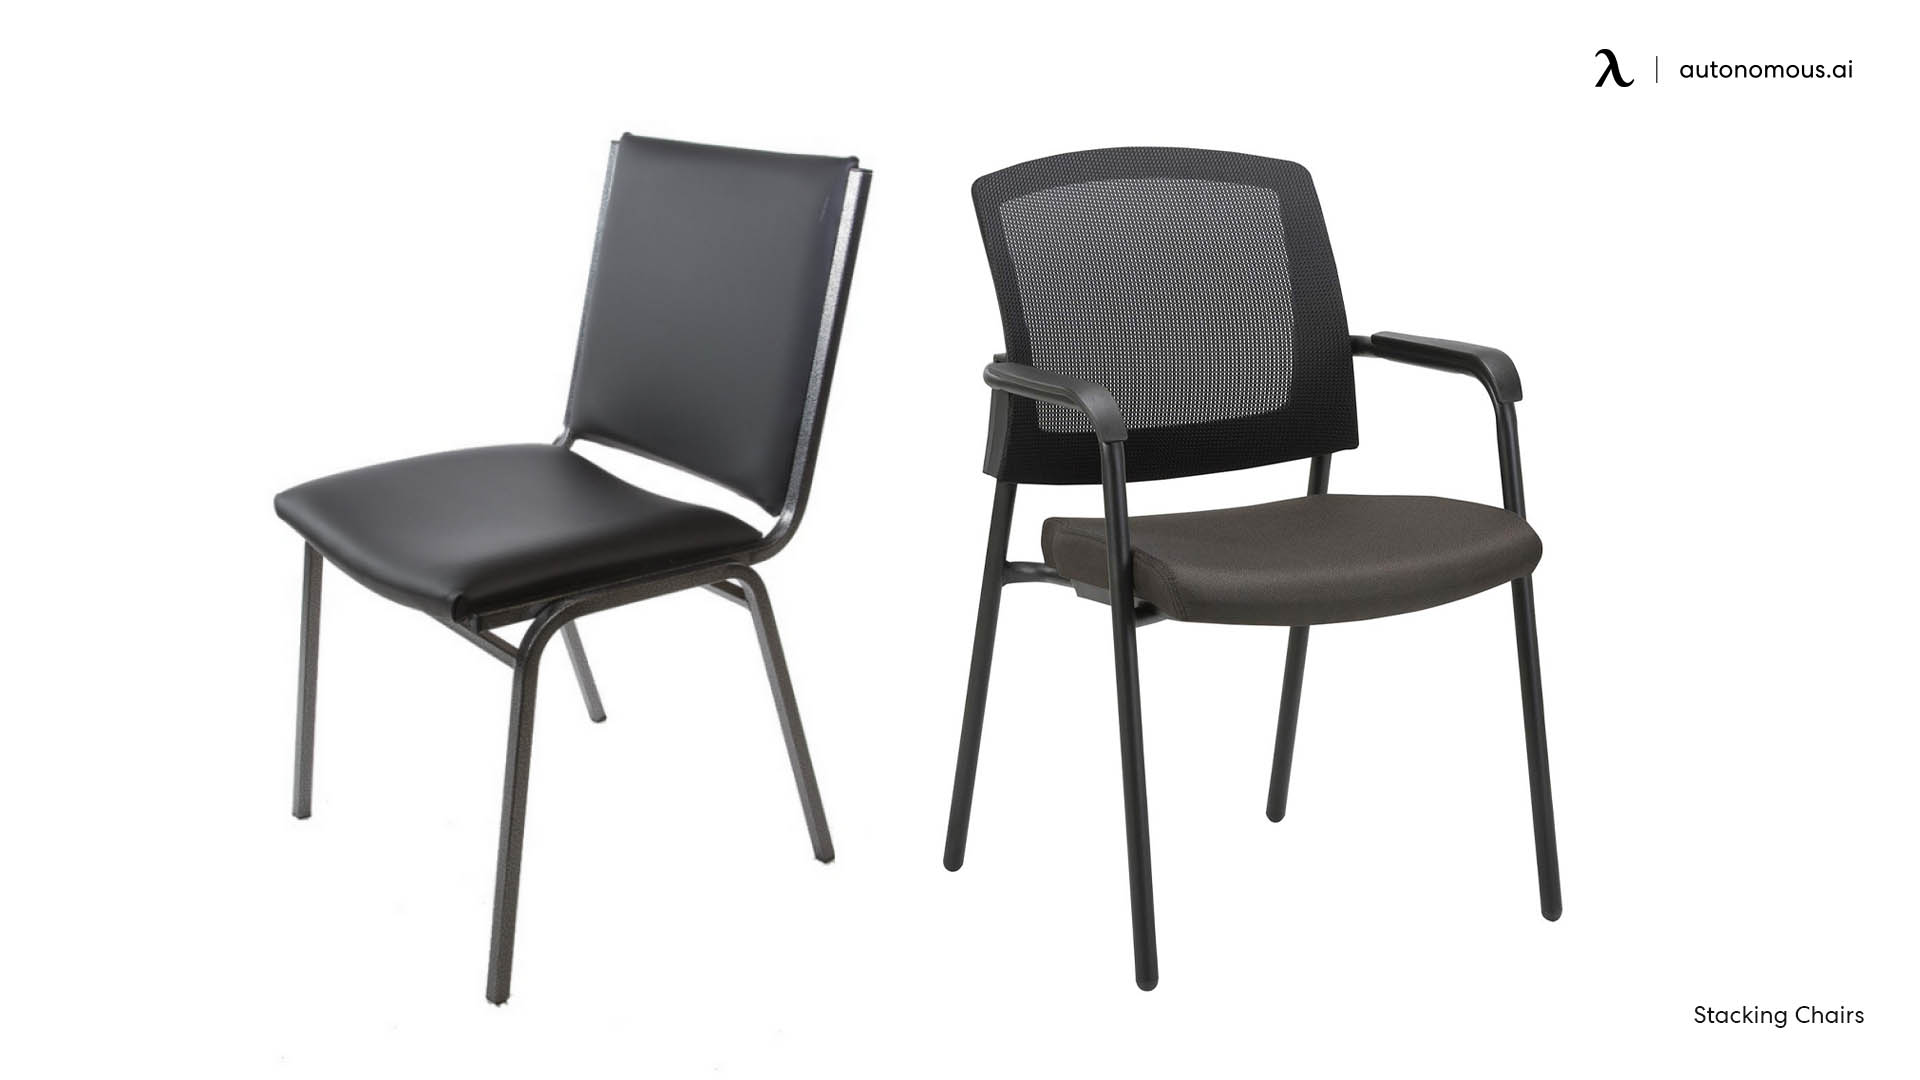 Photo of Stacking chairs